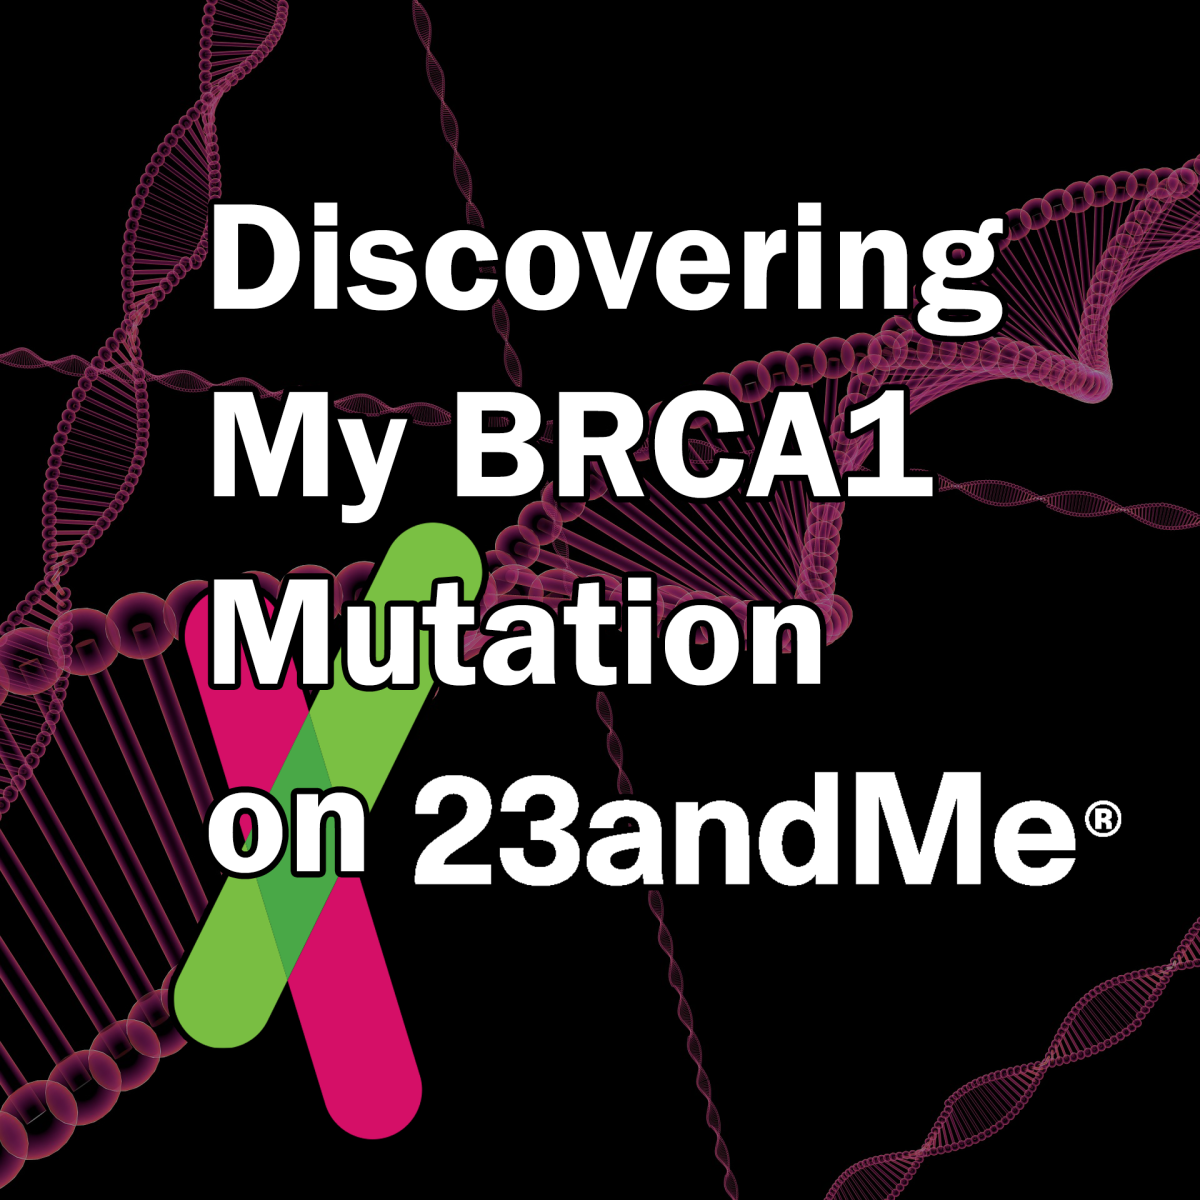 Discovering My BRCA1 Mutation on 23andMe